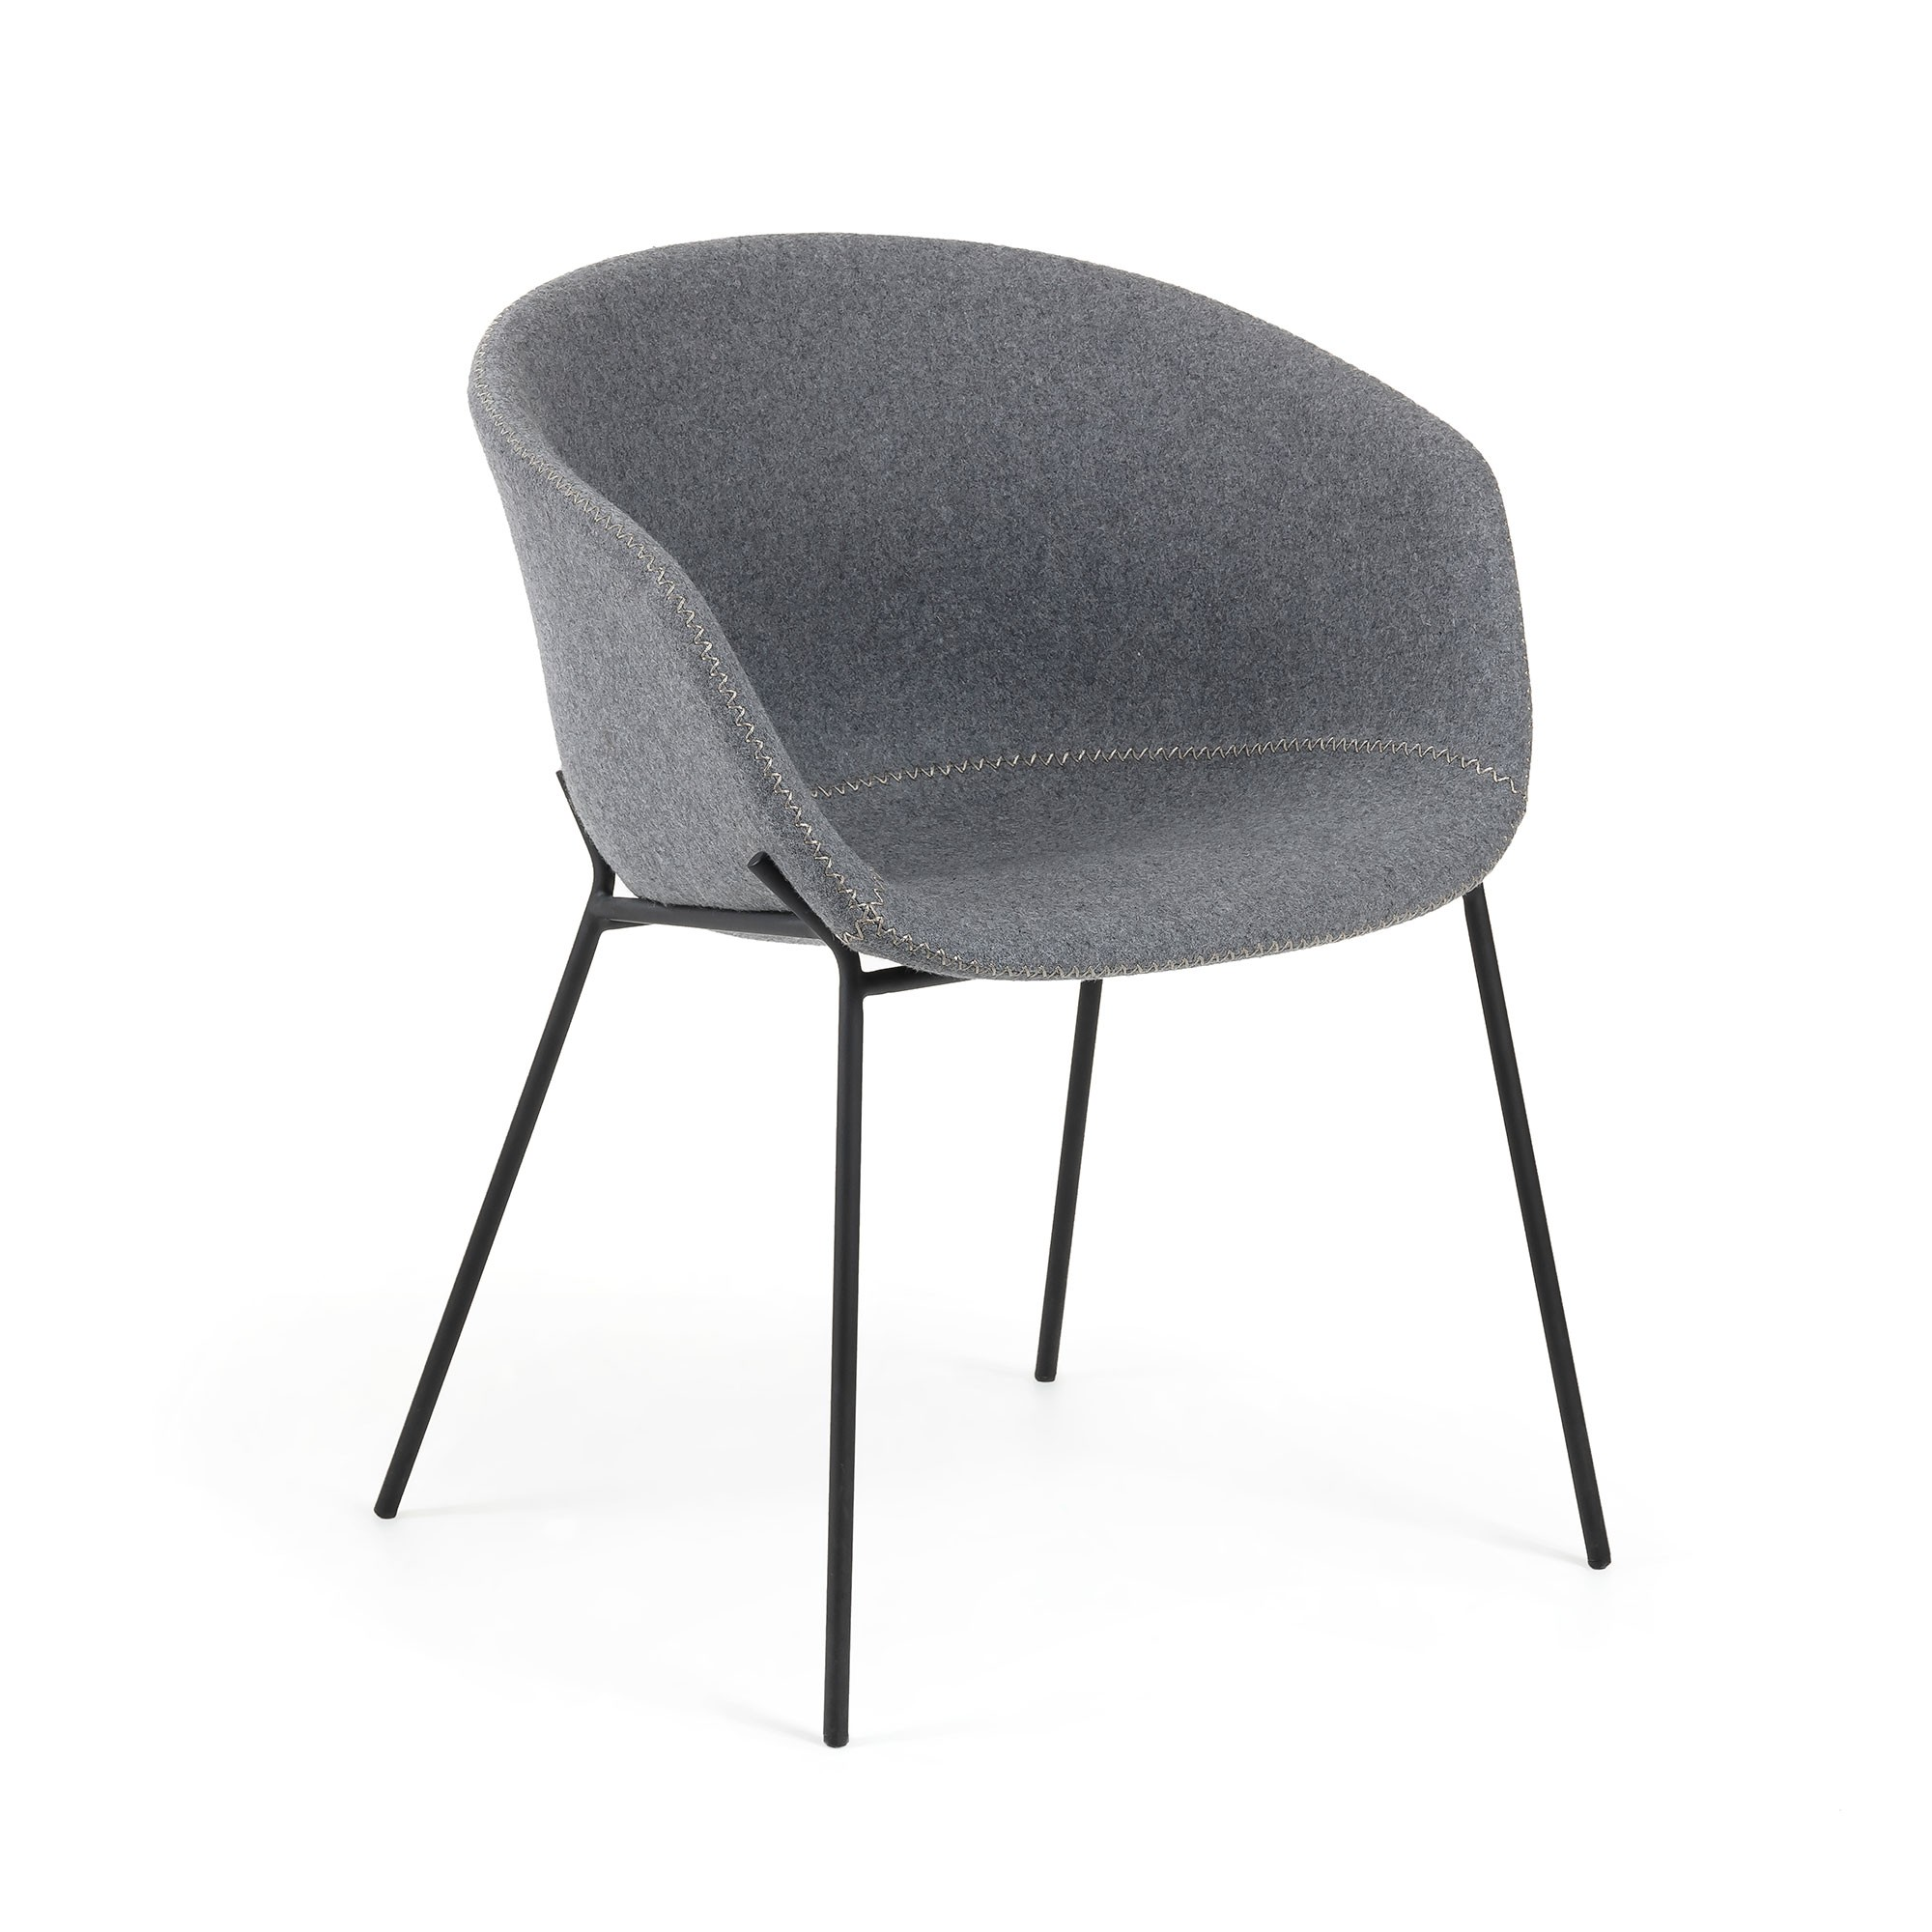 Christopher Wool Fabric & Steel Dining Armchair, Grey